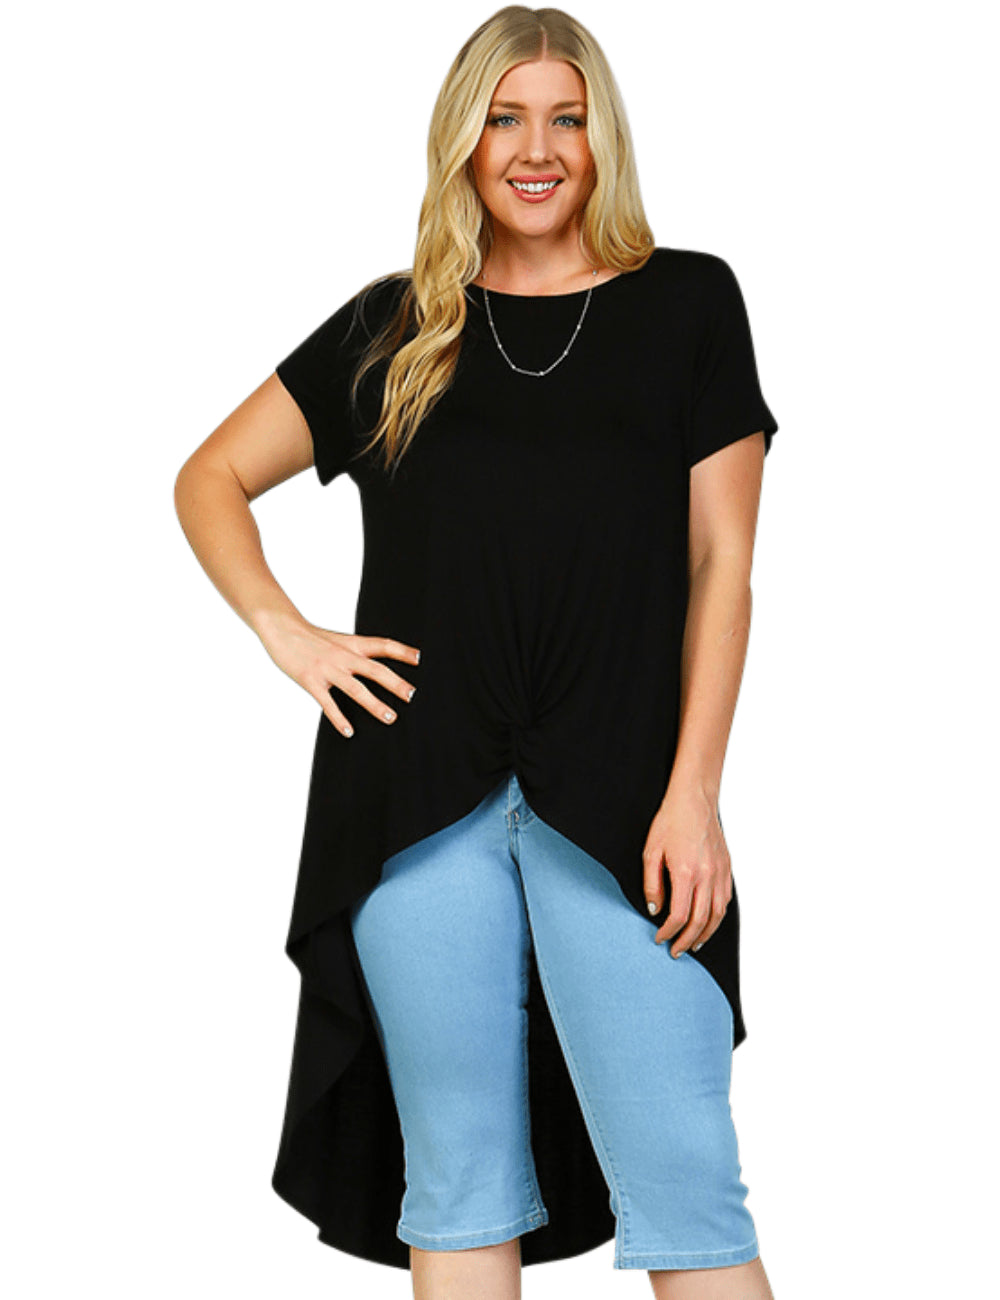 plus size T-Shirt XL / AUS 16 - 18 / Black Aubrey Hi-Low Tee - Black